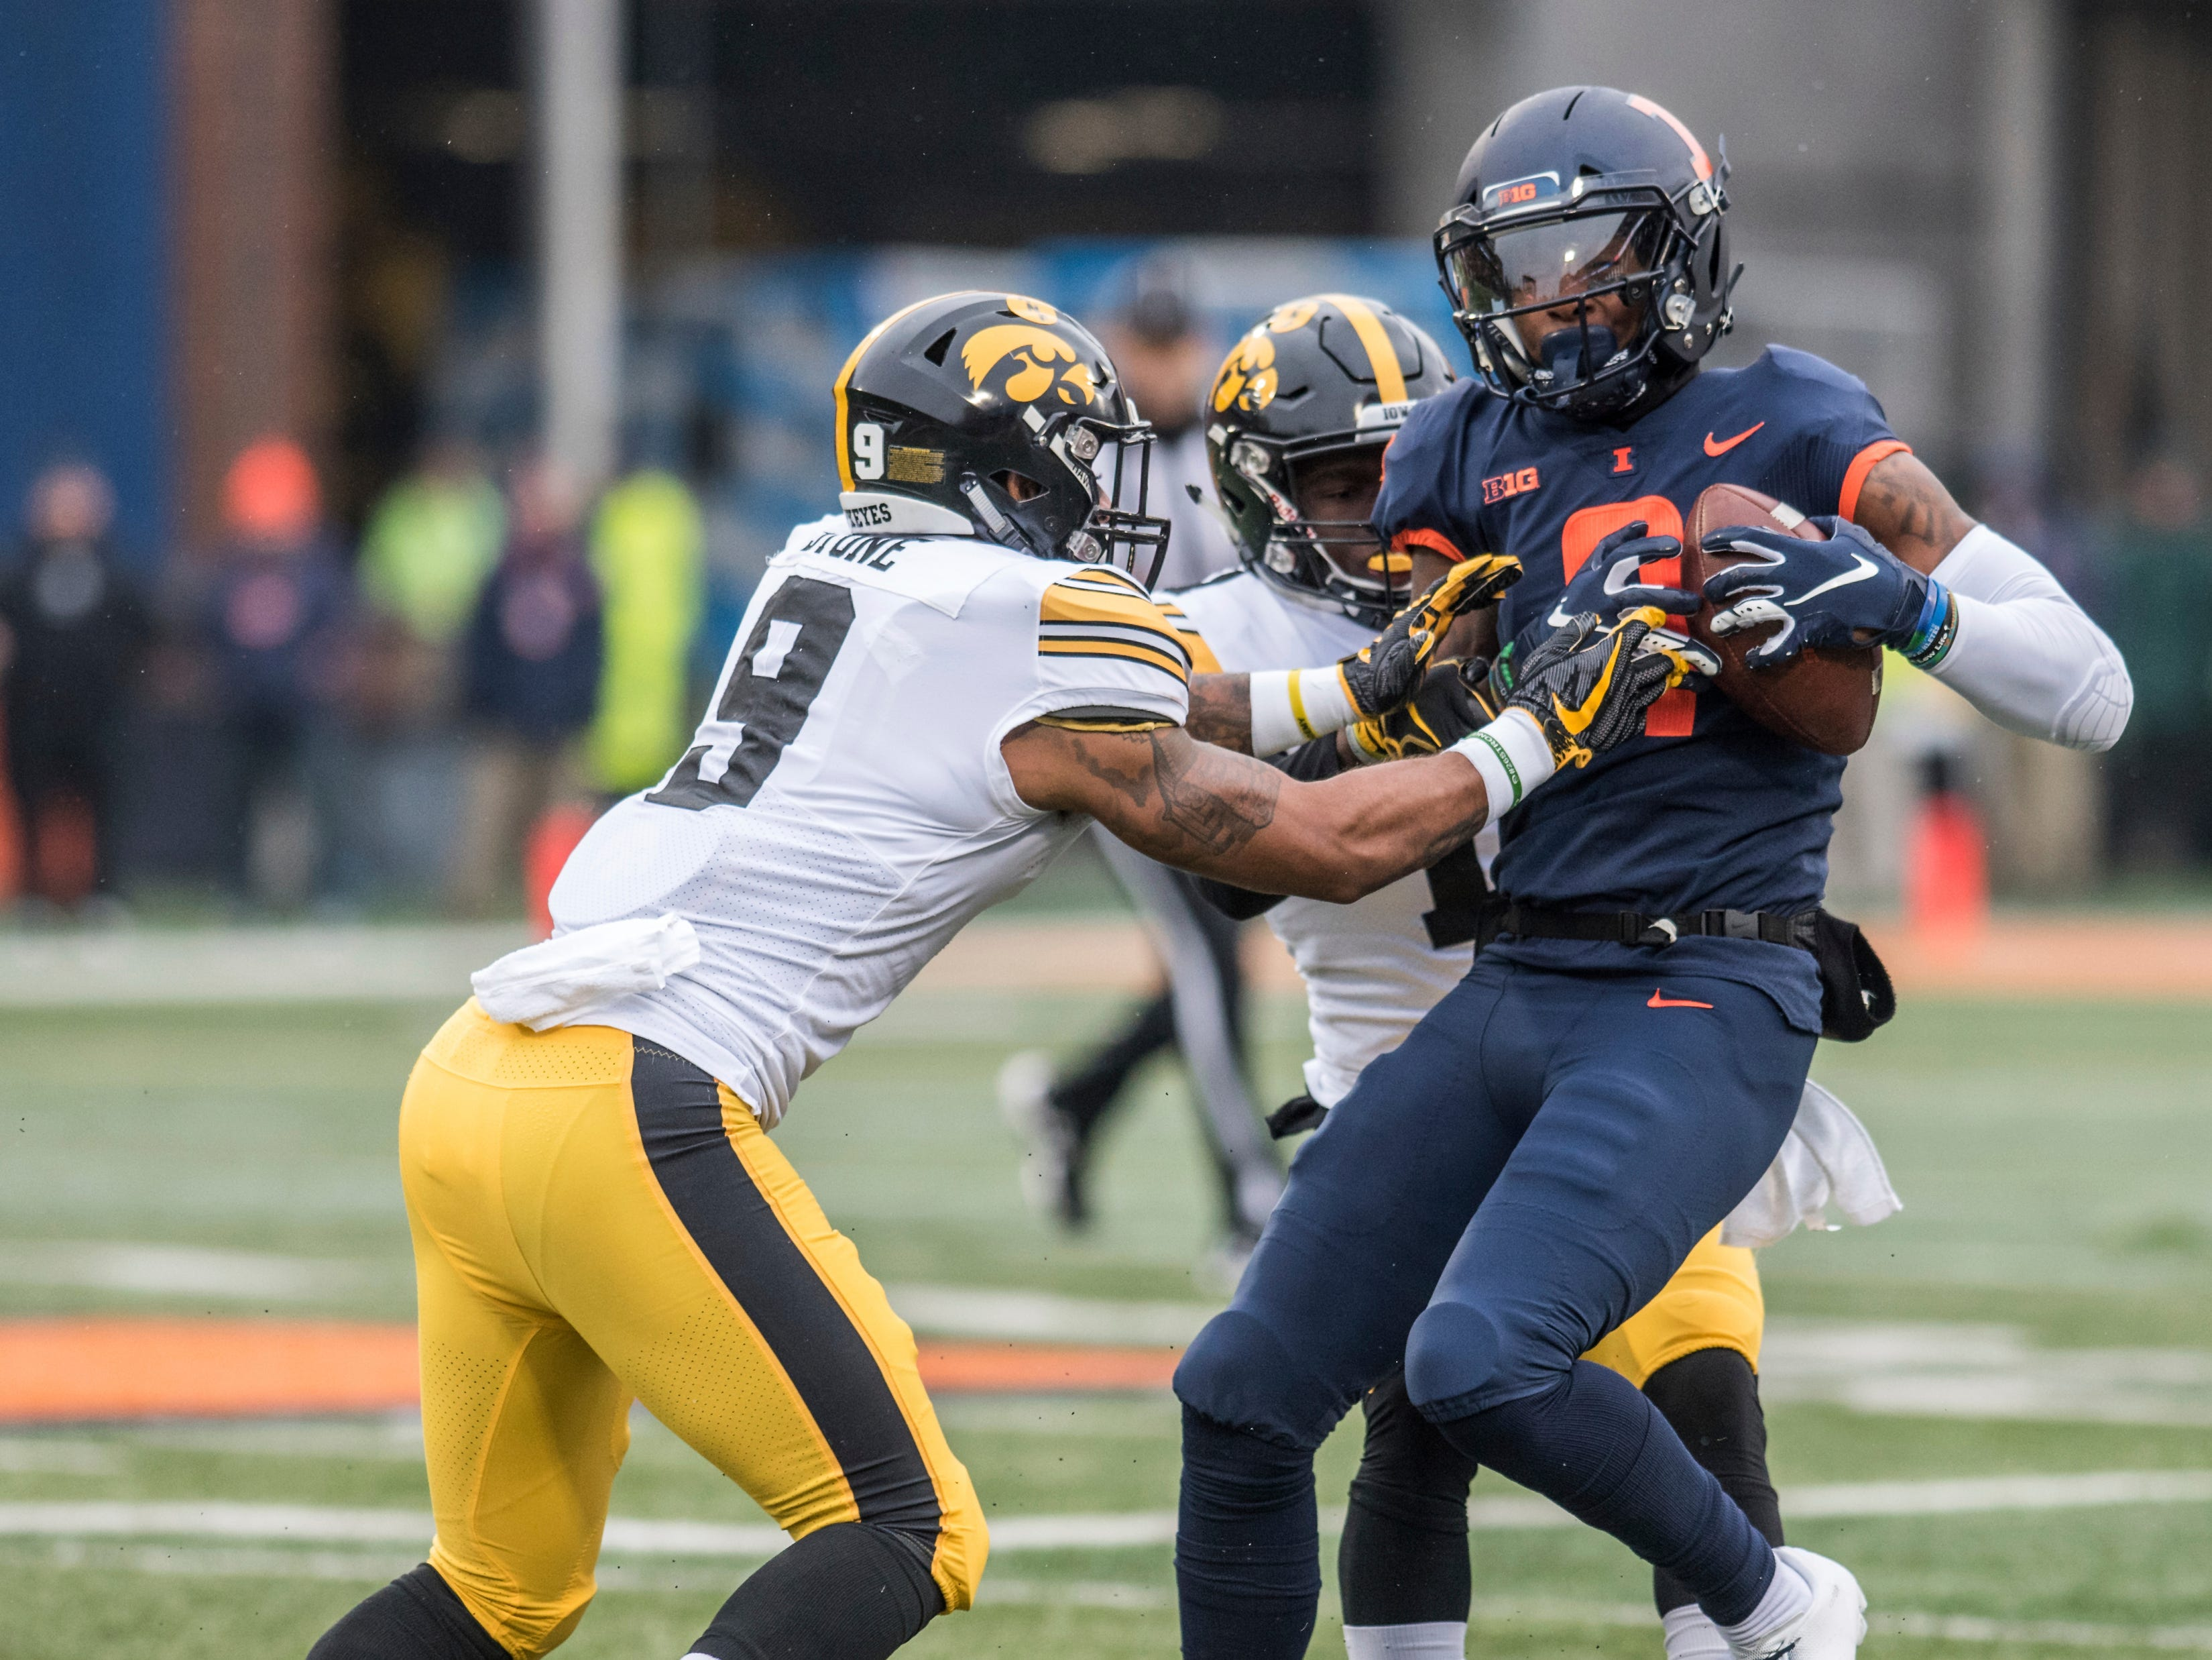 Illinois's Sam Mays (9) is tackled by Iowa's Geno Stone (9) after making a reception in the first half of a NCAA college football game Saturday, Nov. 17, 2018, in Champaign, Ill.